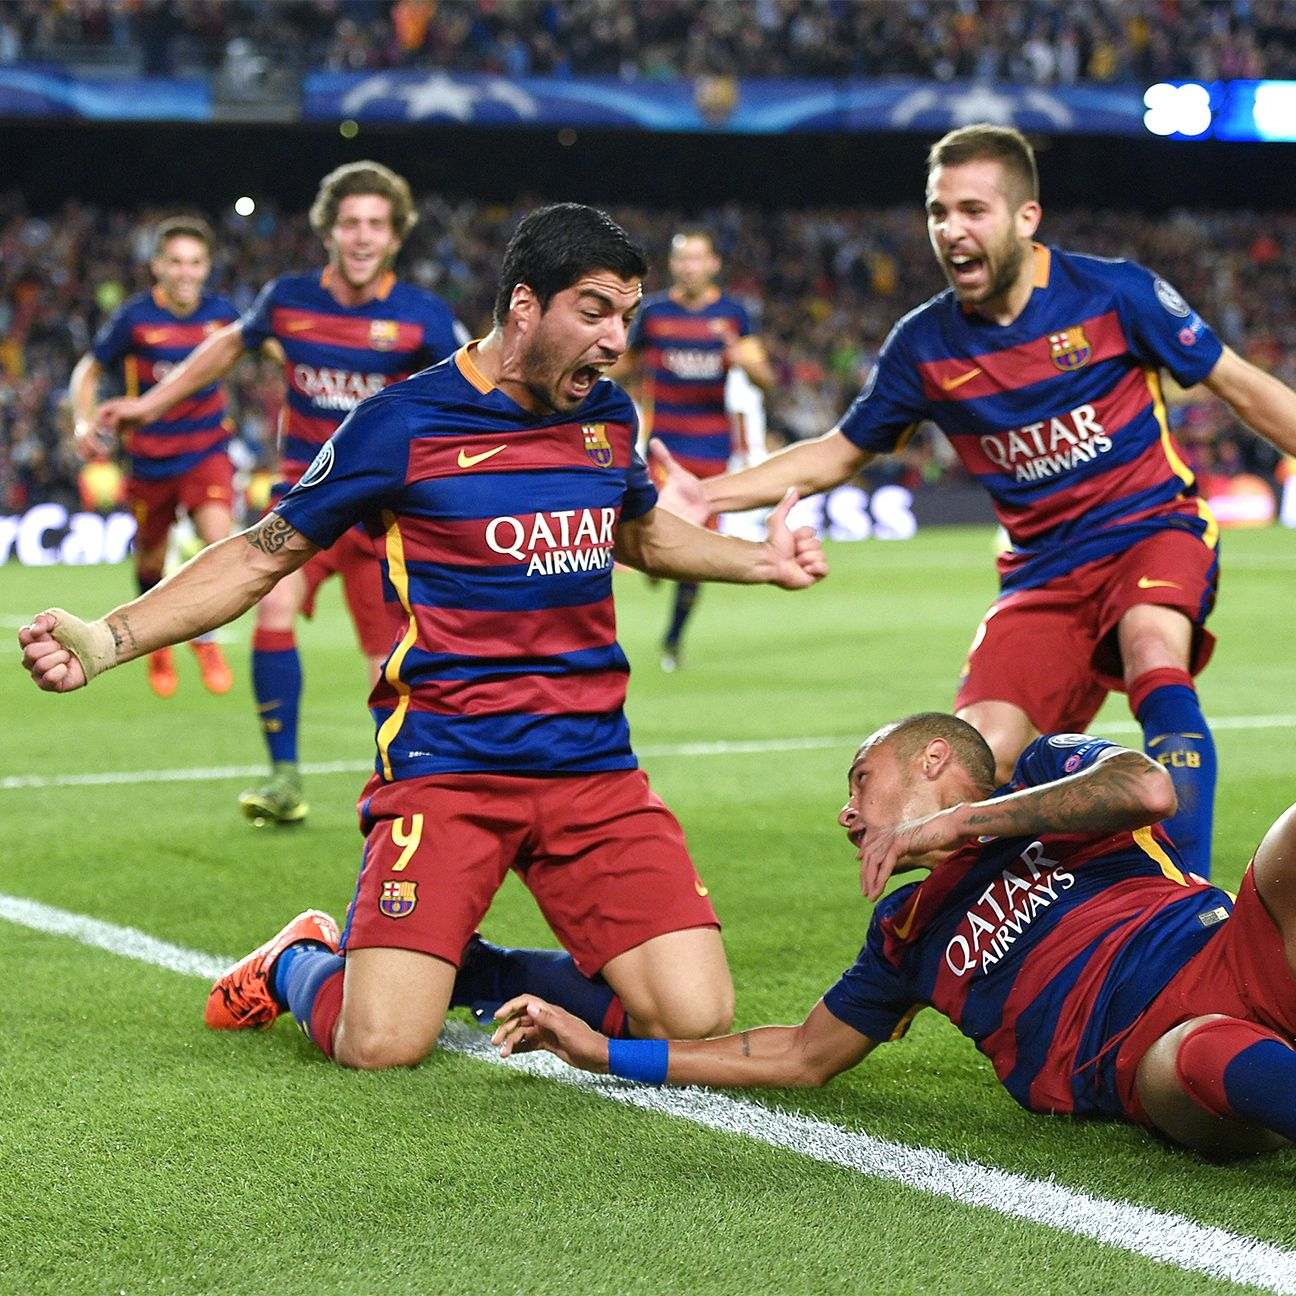 Luis Suarez capped off Barcelona's scintillating comeback with a sizzling right-footed strike in the 82nd minute.